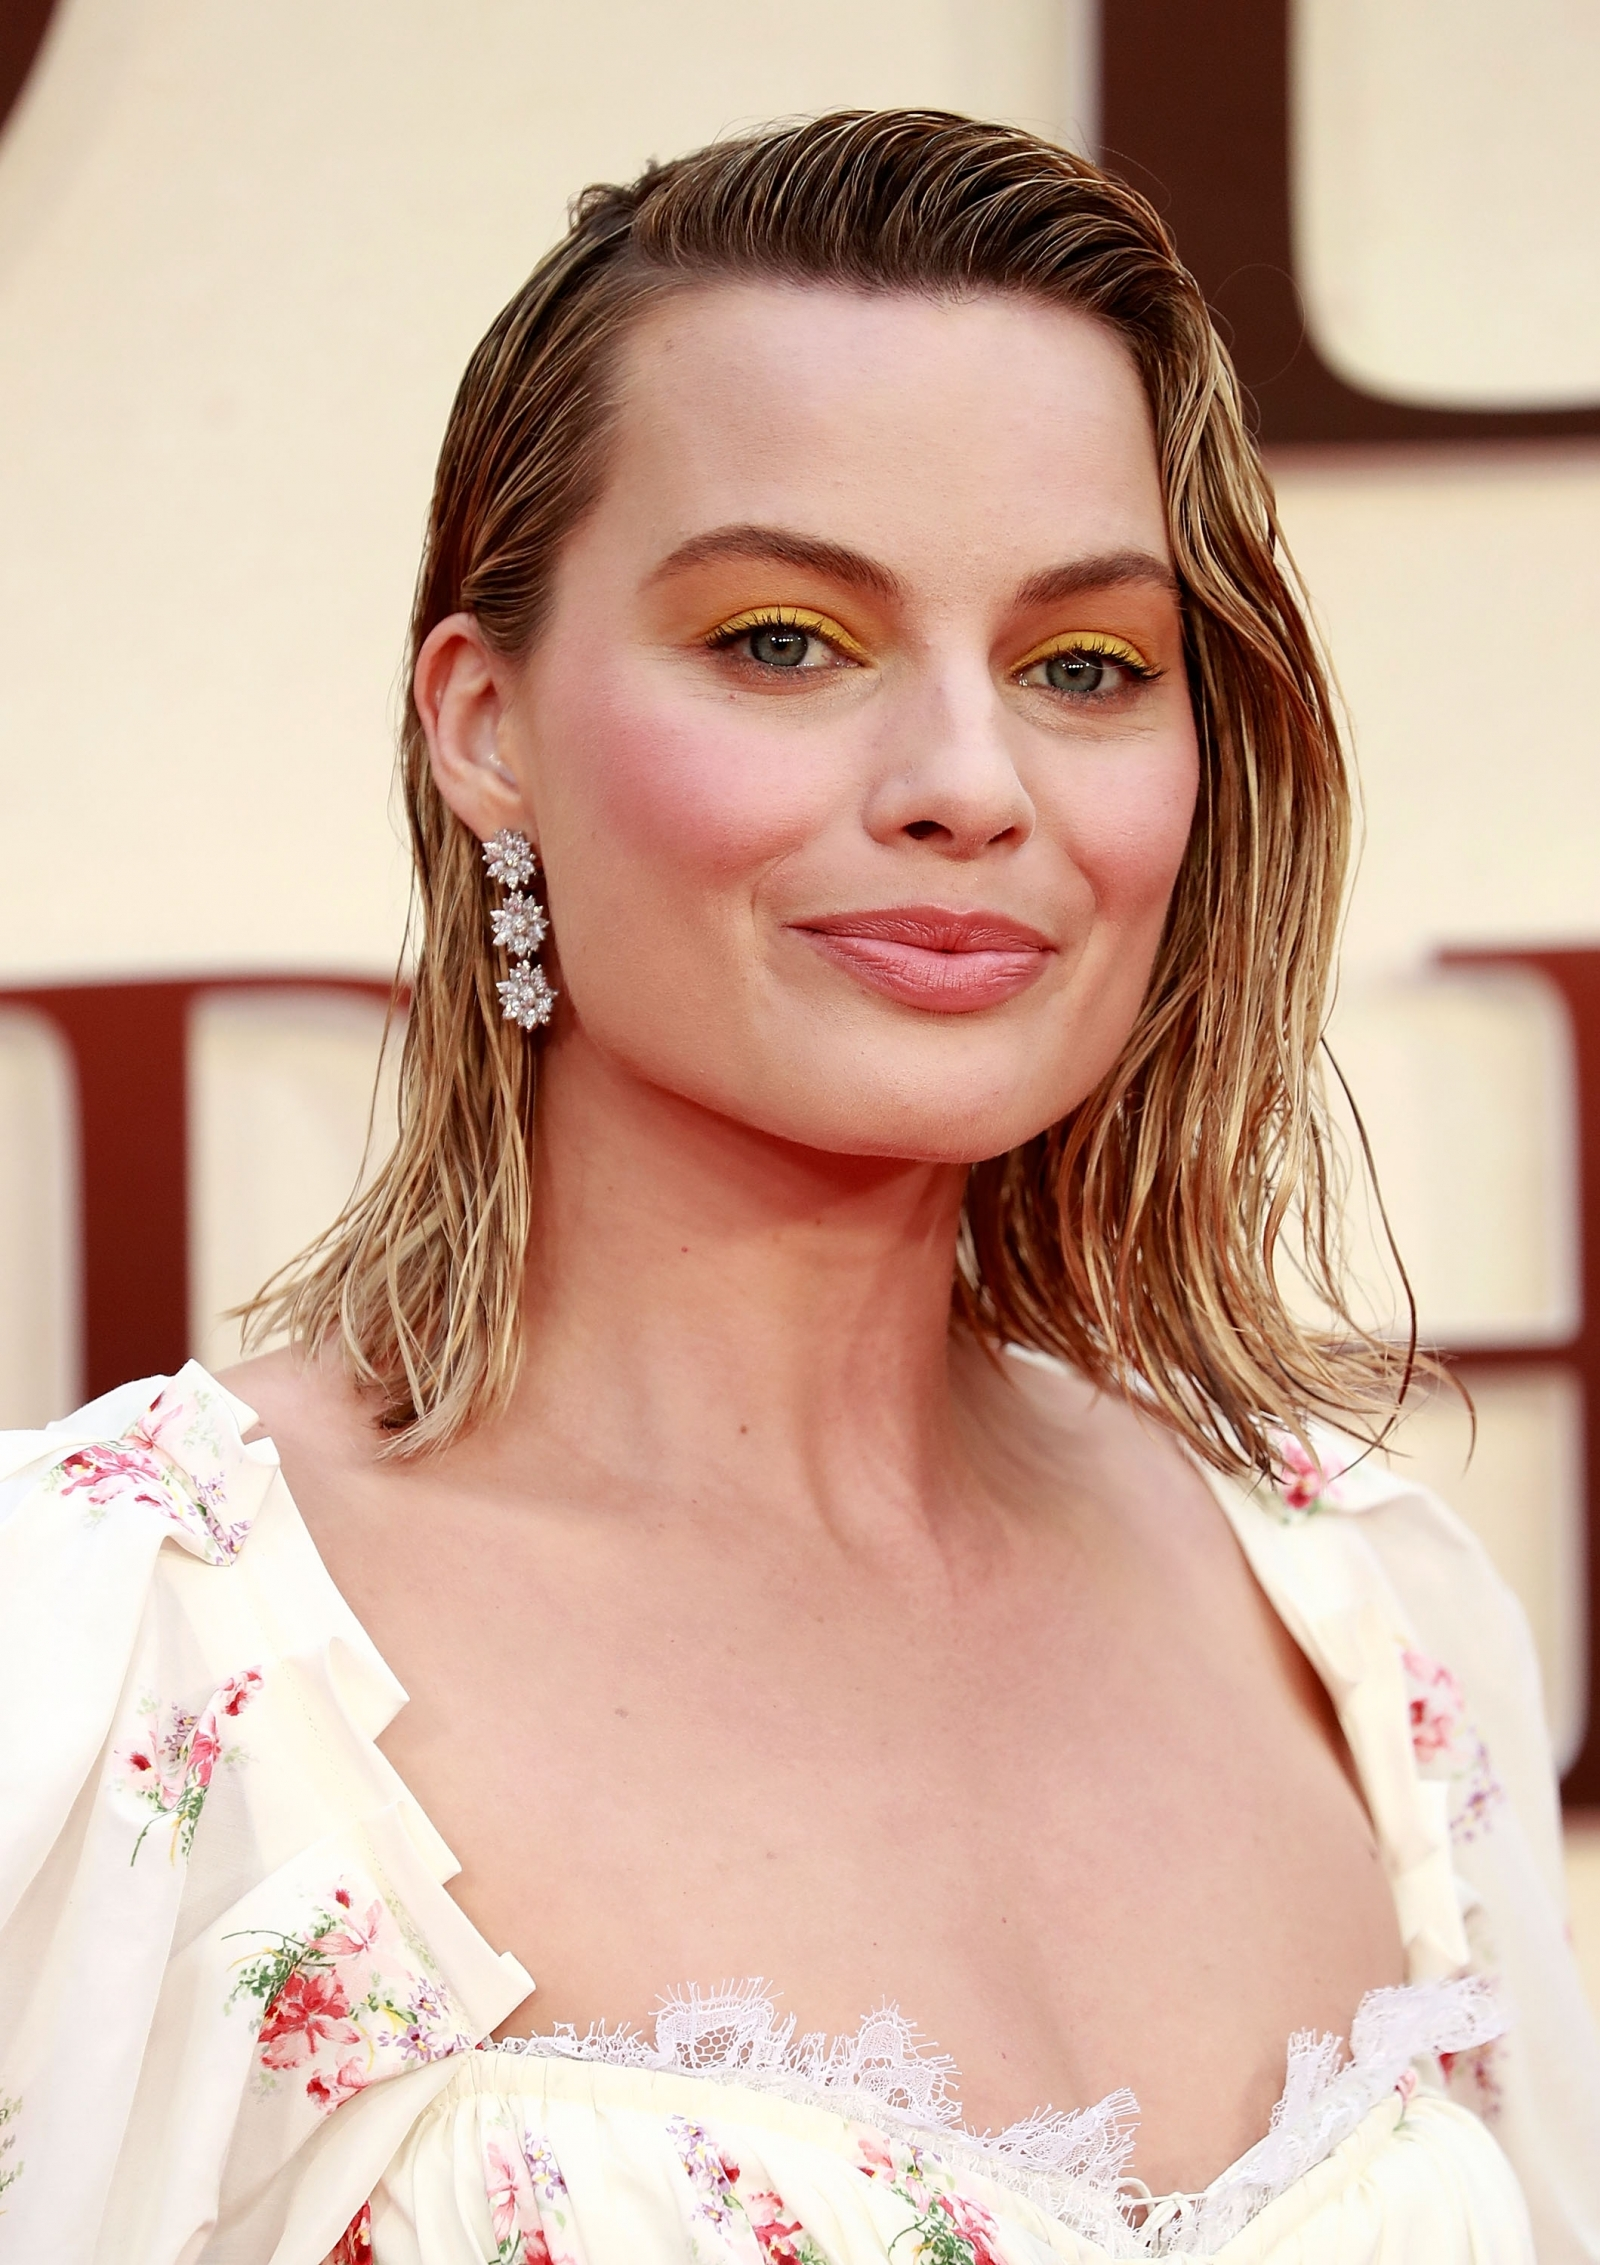 Margot Robbie delights her fans on the red carpet at I, Tonya screening